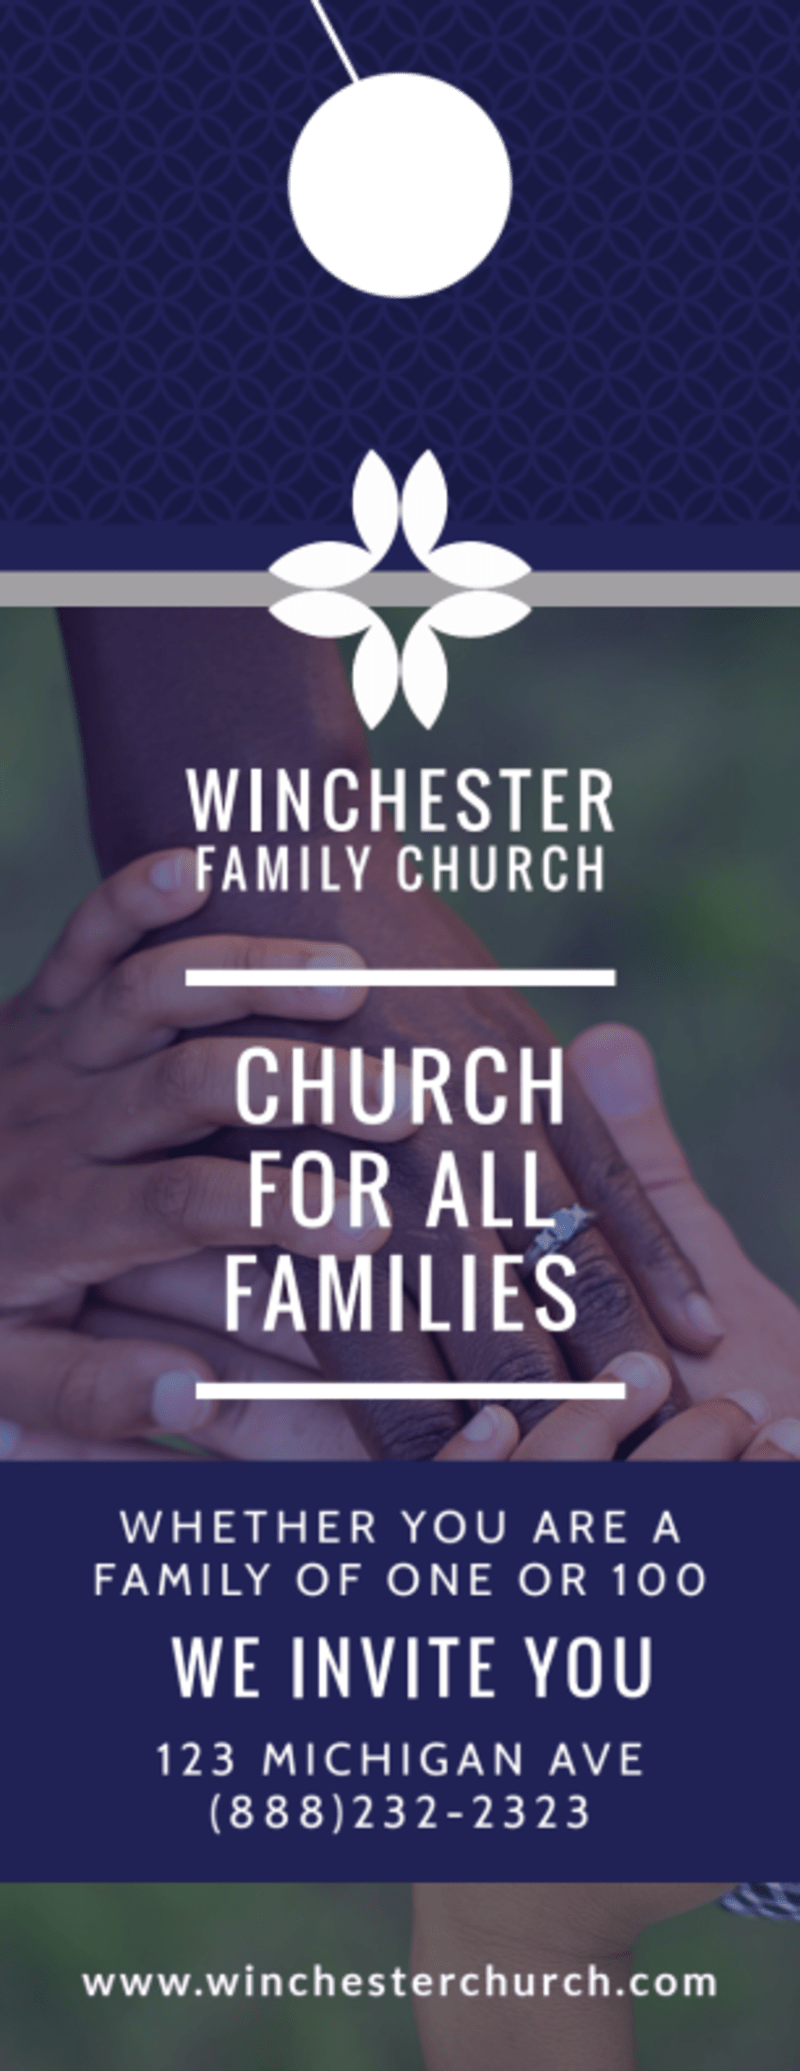 All Families Church Invitation Door Hanger Template Preview 2